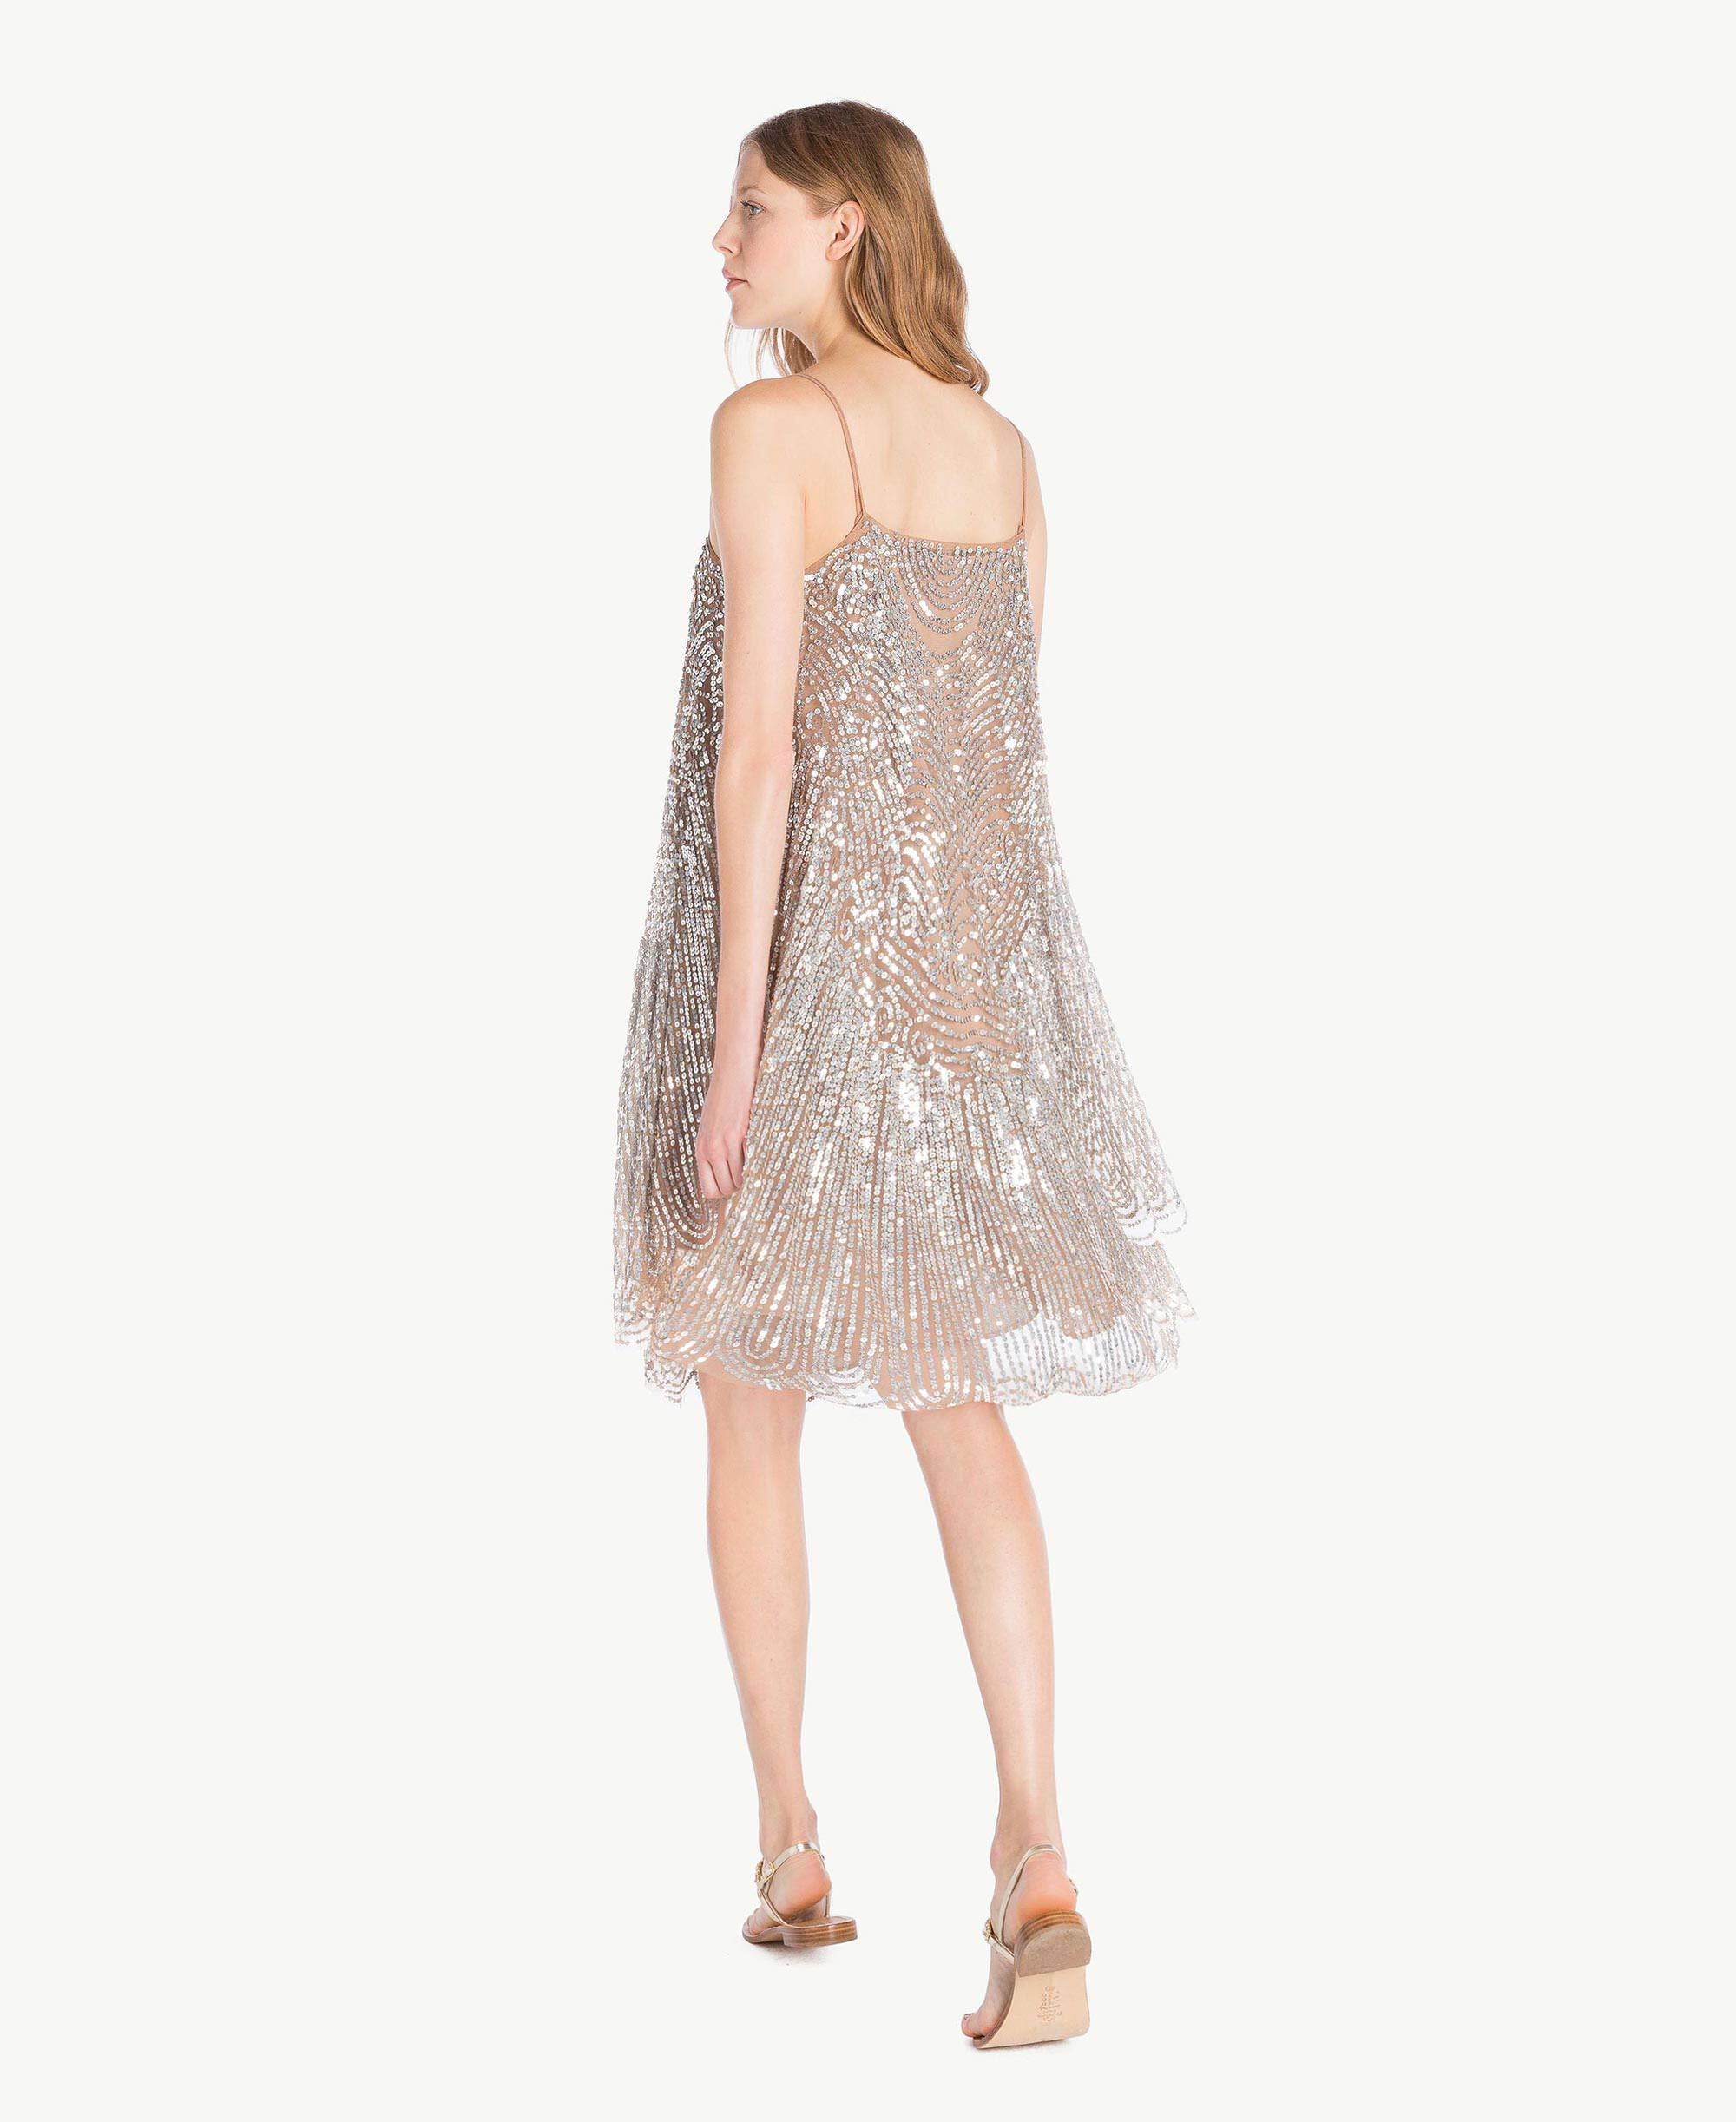 d7555ac2 All over sequin dress Woman, Silver   TWINSET Milano